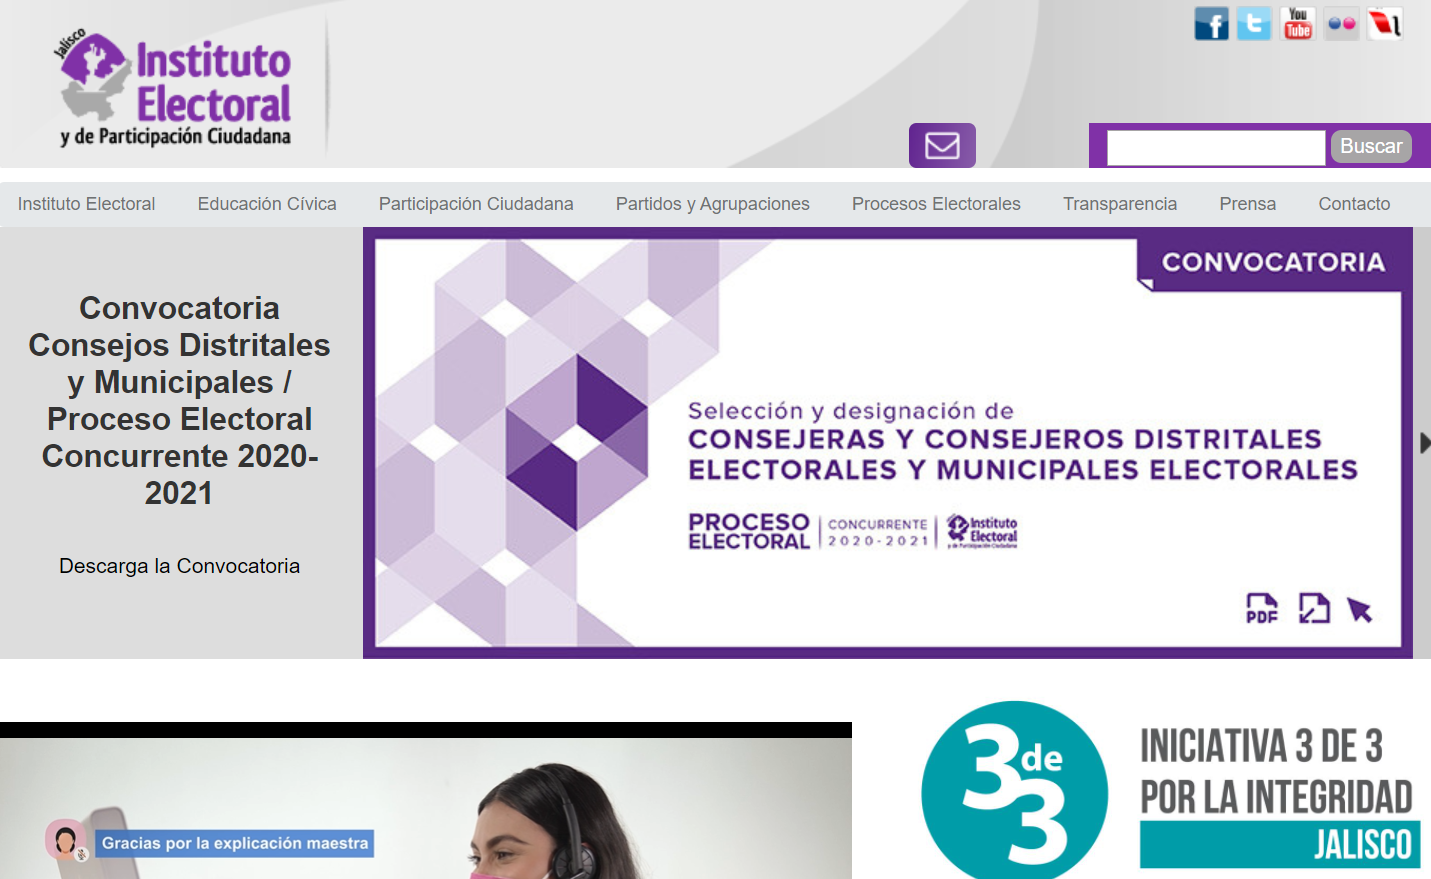 Repository of Electoral and Citizen Participation Institute - IEPC Jalisco